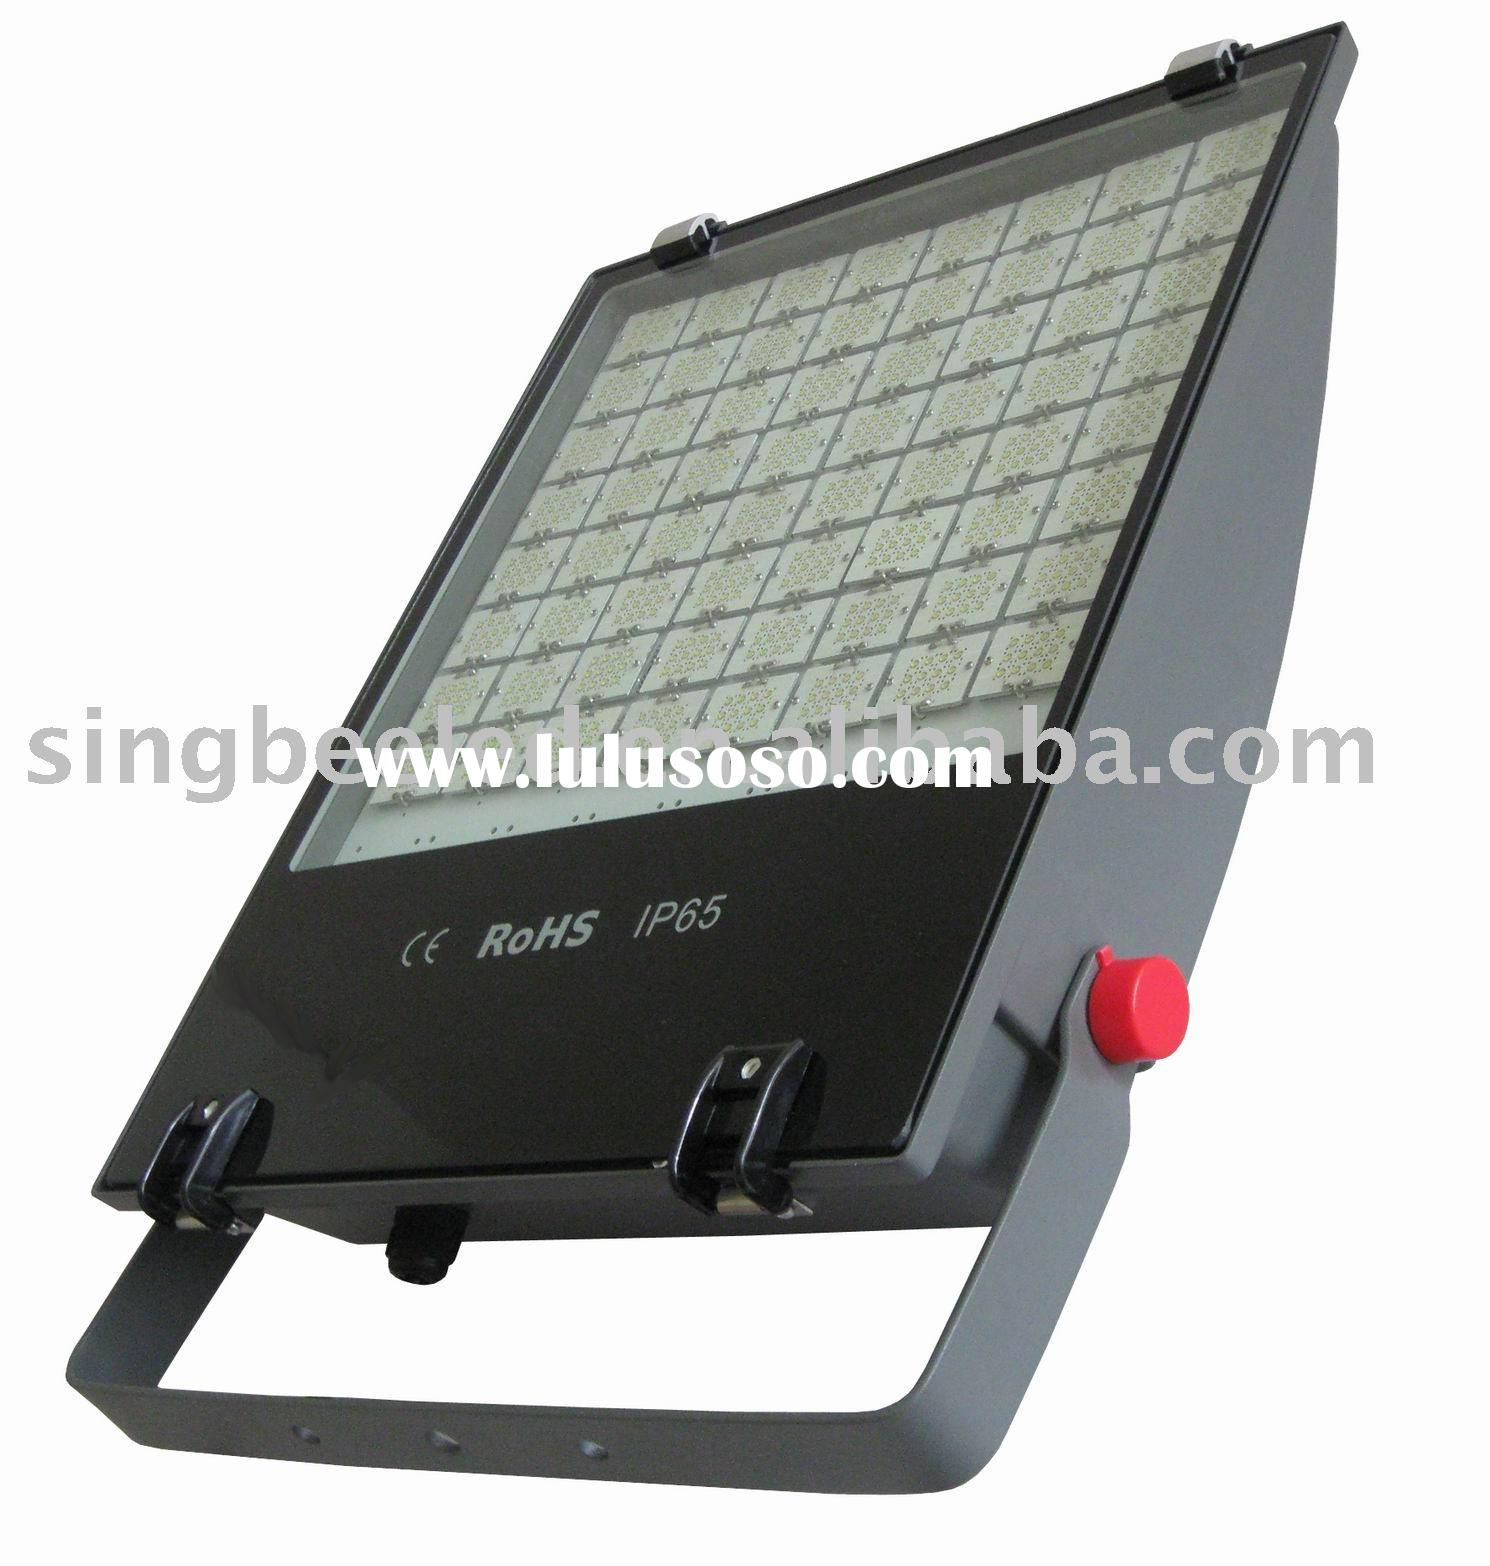 LED flood light,LED industrial light, LED solar outdoor lamp LED lawn lamp, LED spot light SP-2019